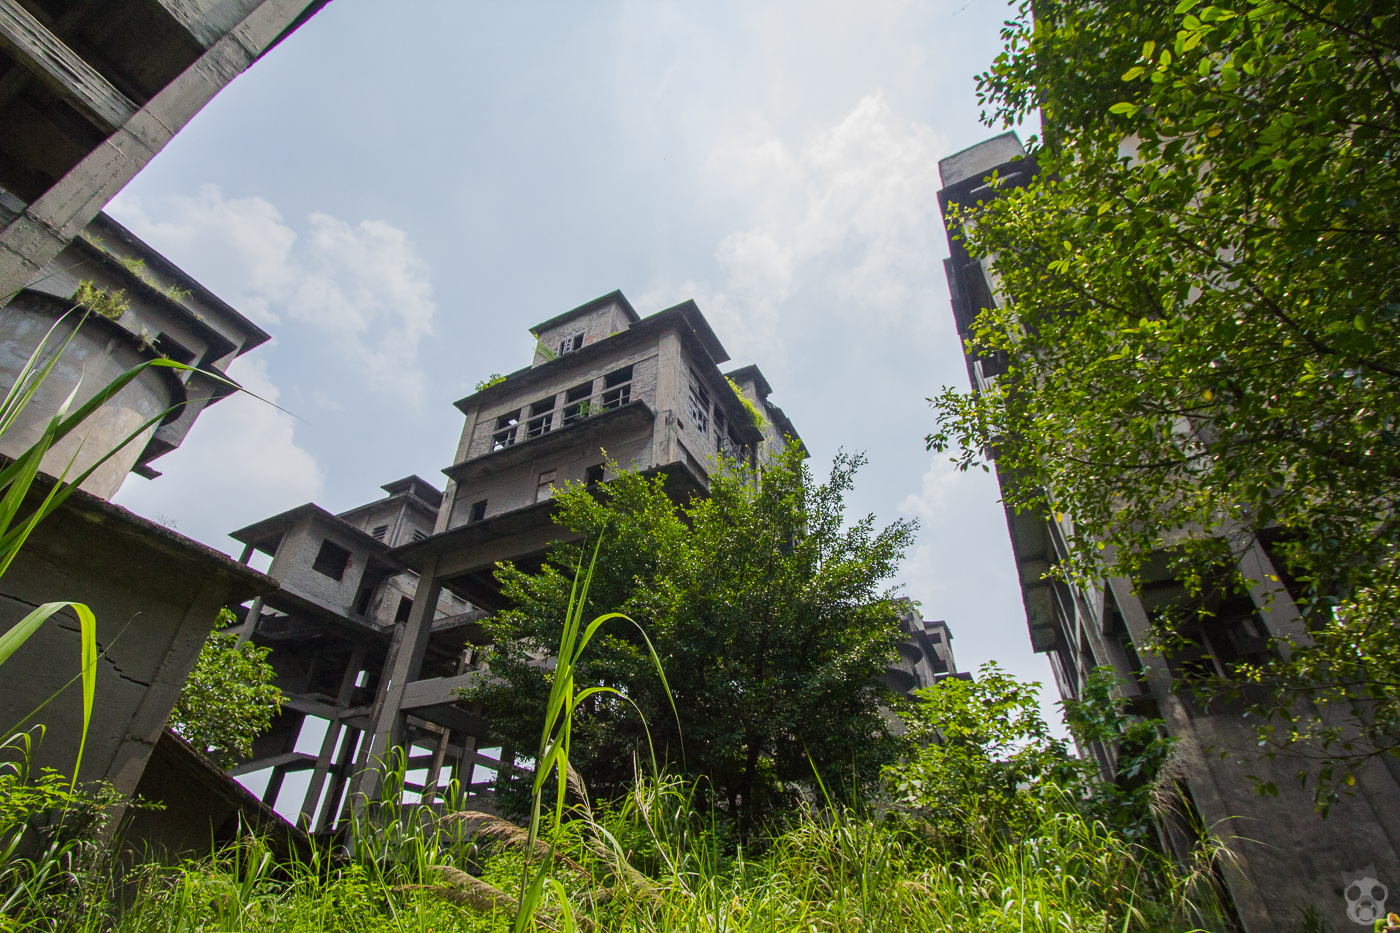 Abandoned Cement Plant in China セメント工場 中国 廃墟